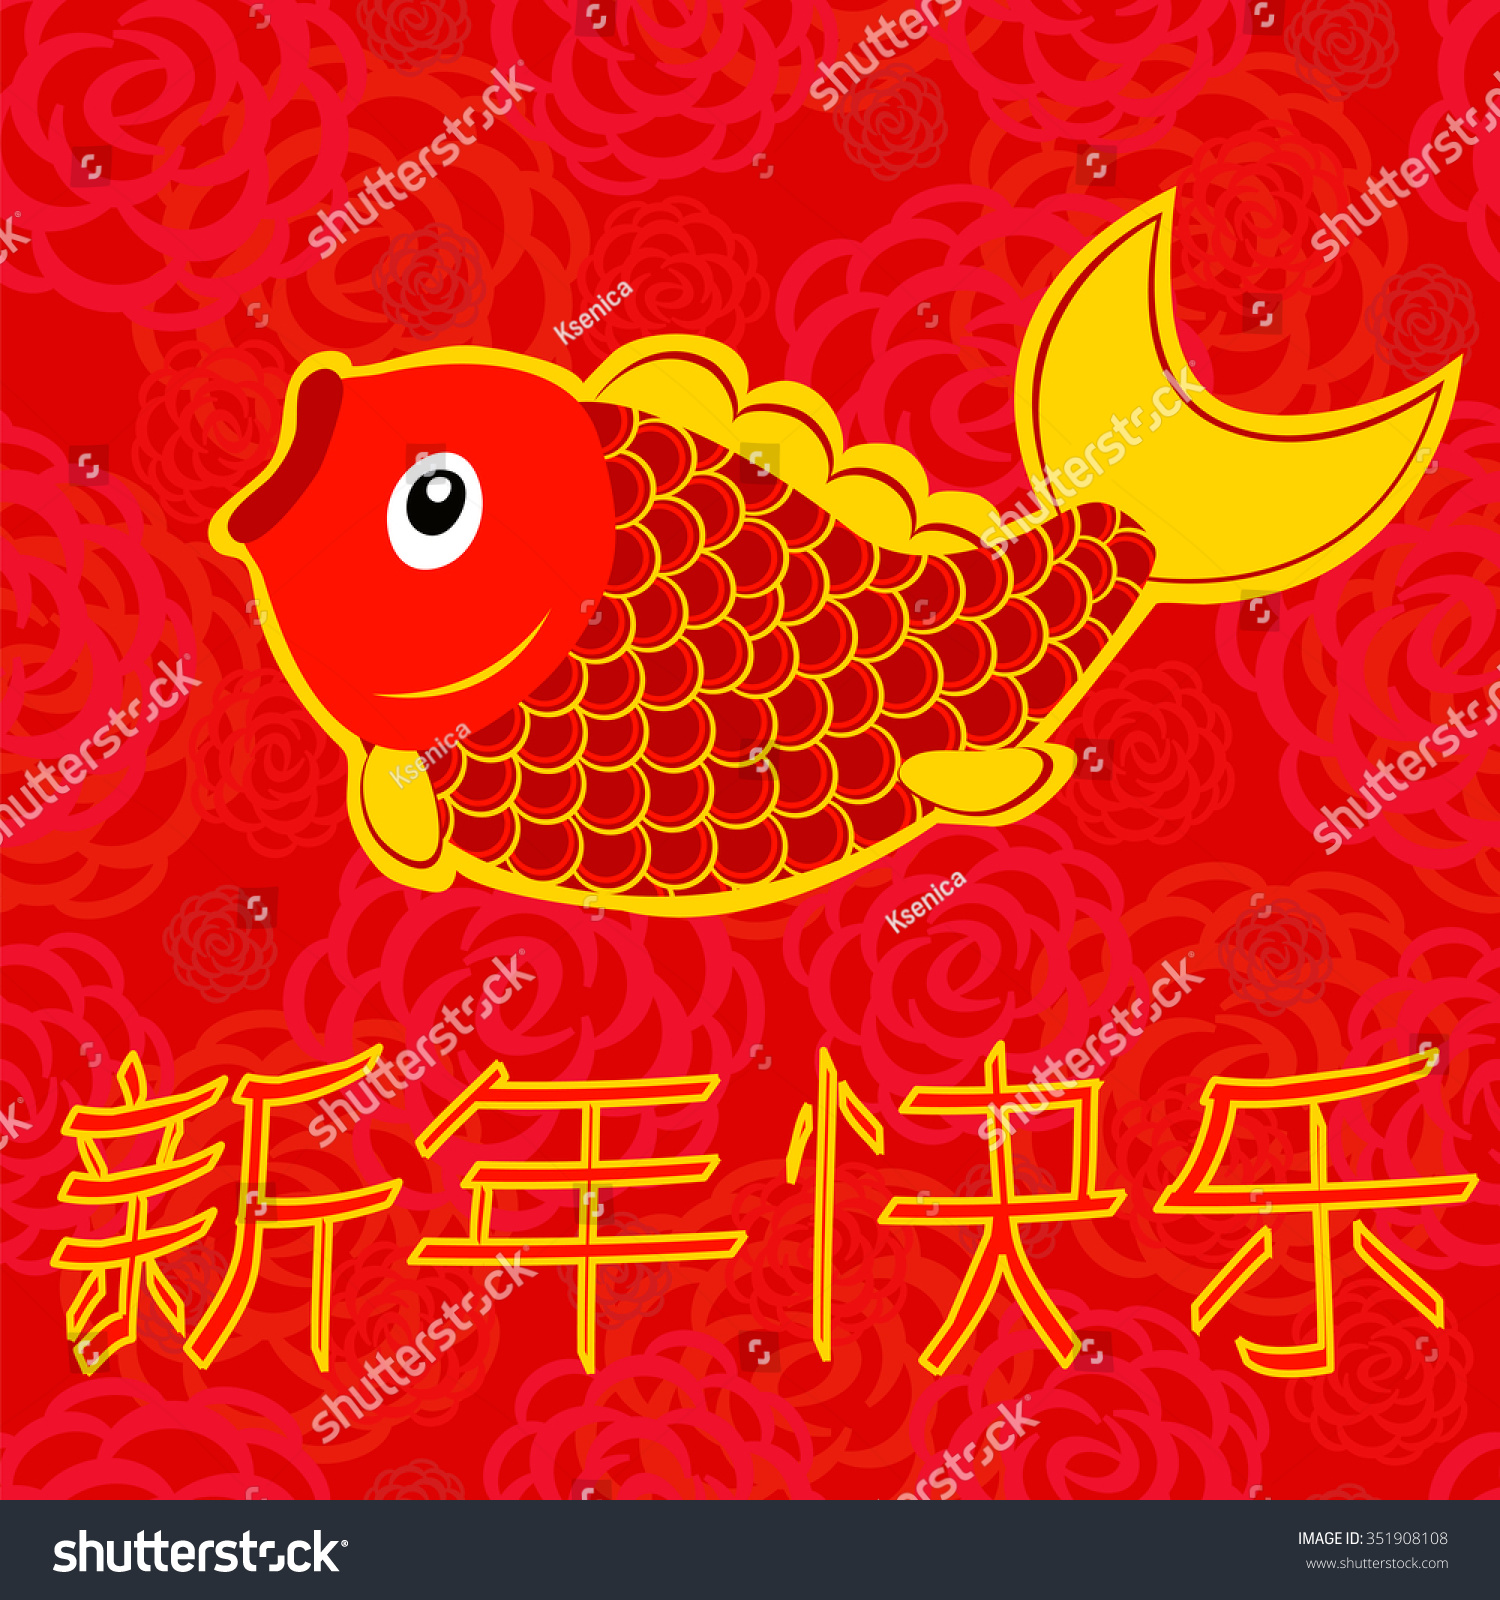 Happy new year chinese characters symbol stock vector 351908108 chinese characters and the symbol of happiness in the form of fish buycottarizona Gallery